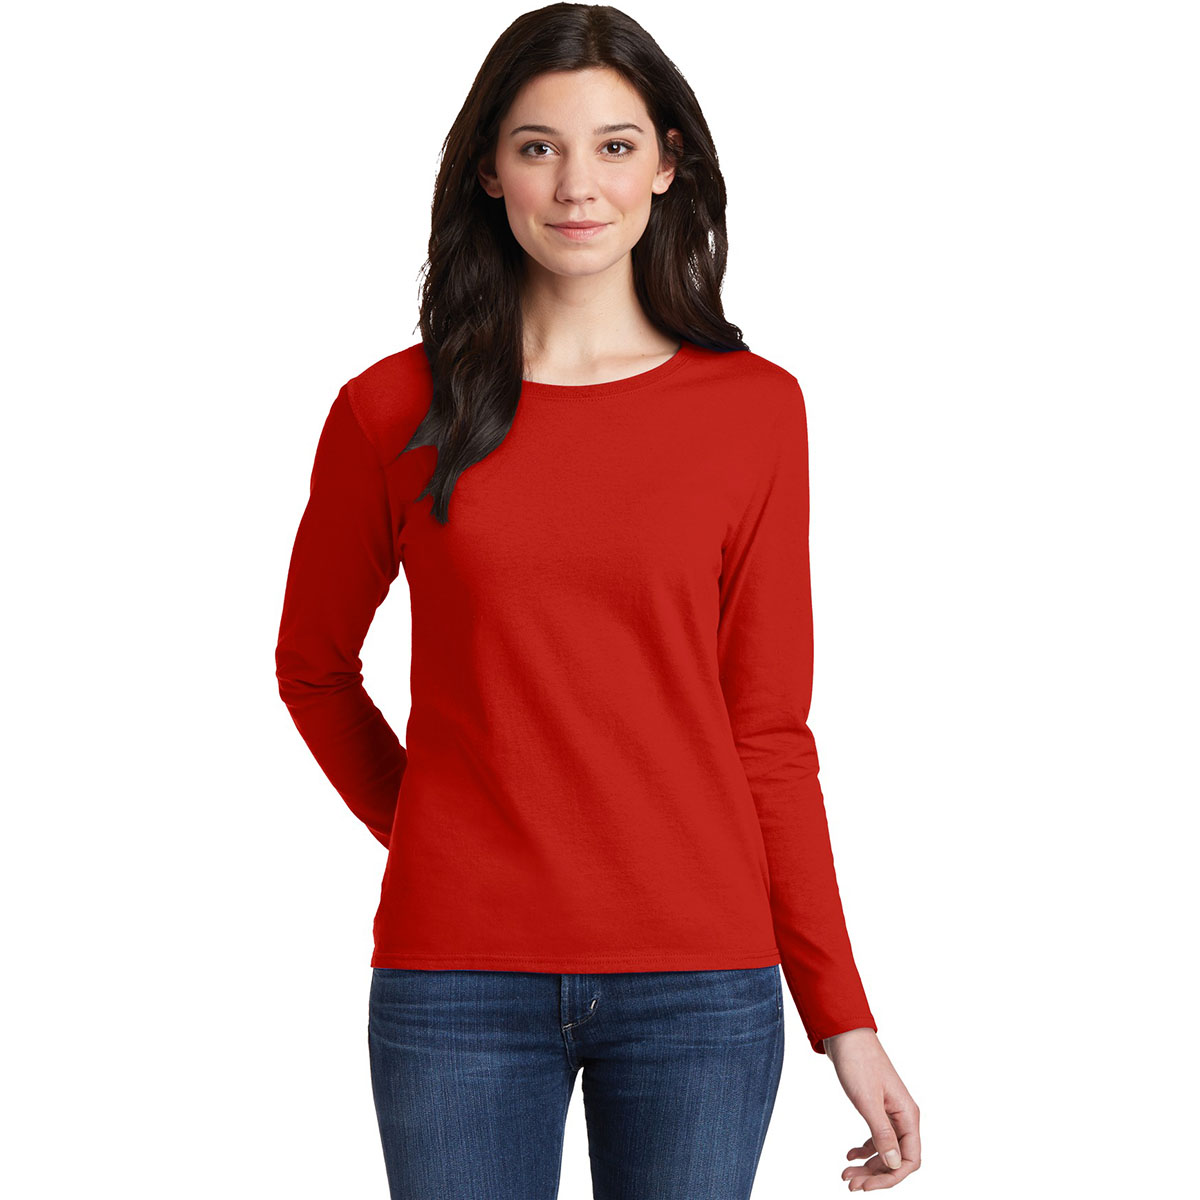 Gildan 5400l ladies heavy cotton long sleeve t shirt red for Womens long sleeved t shirts